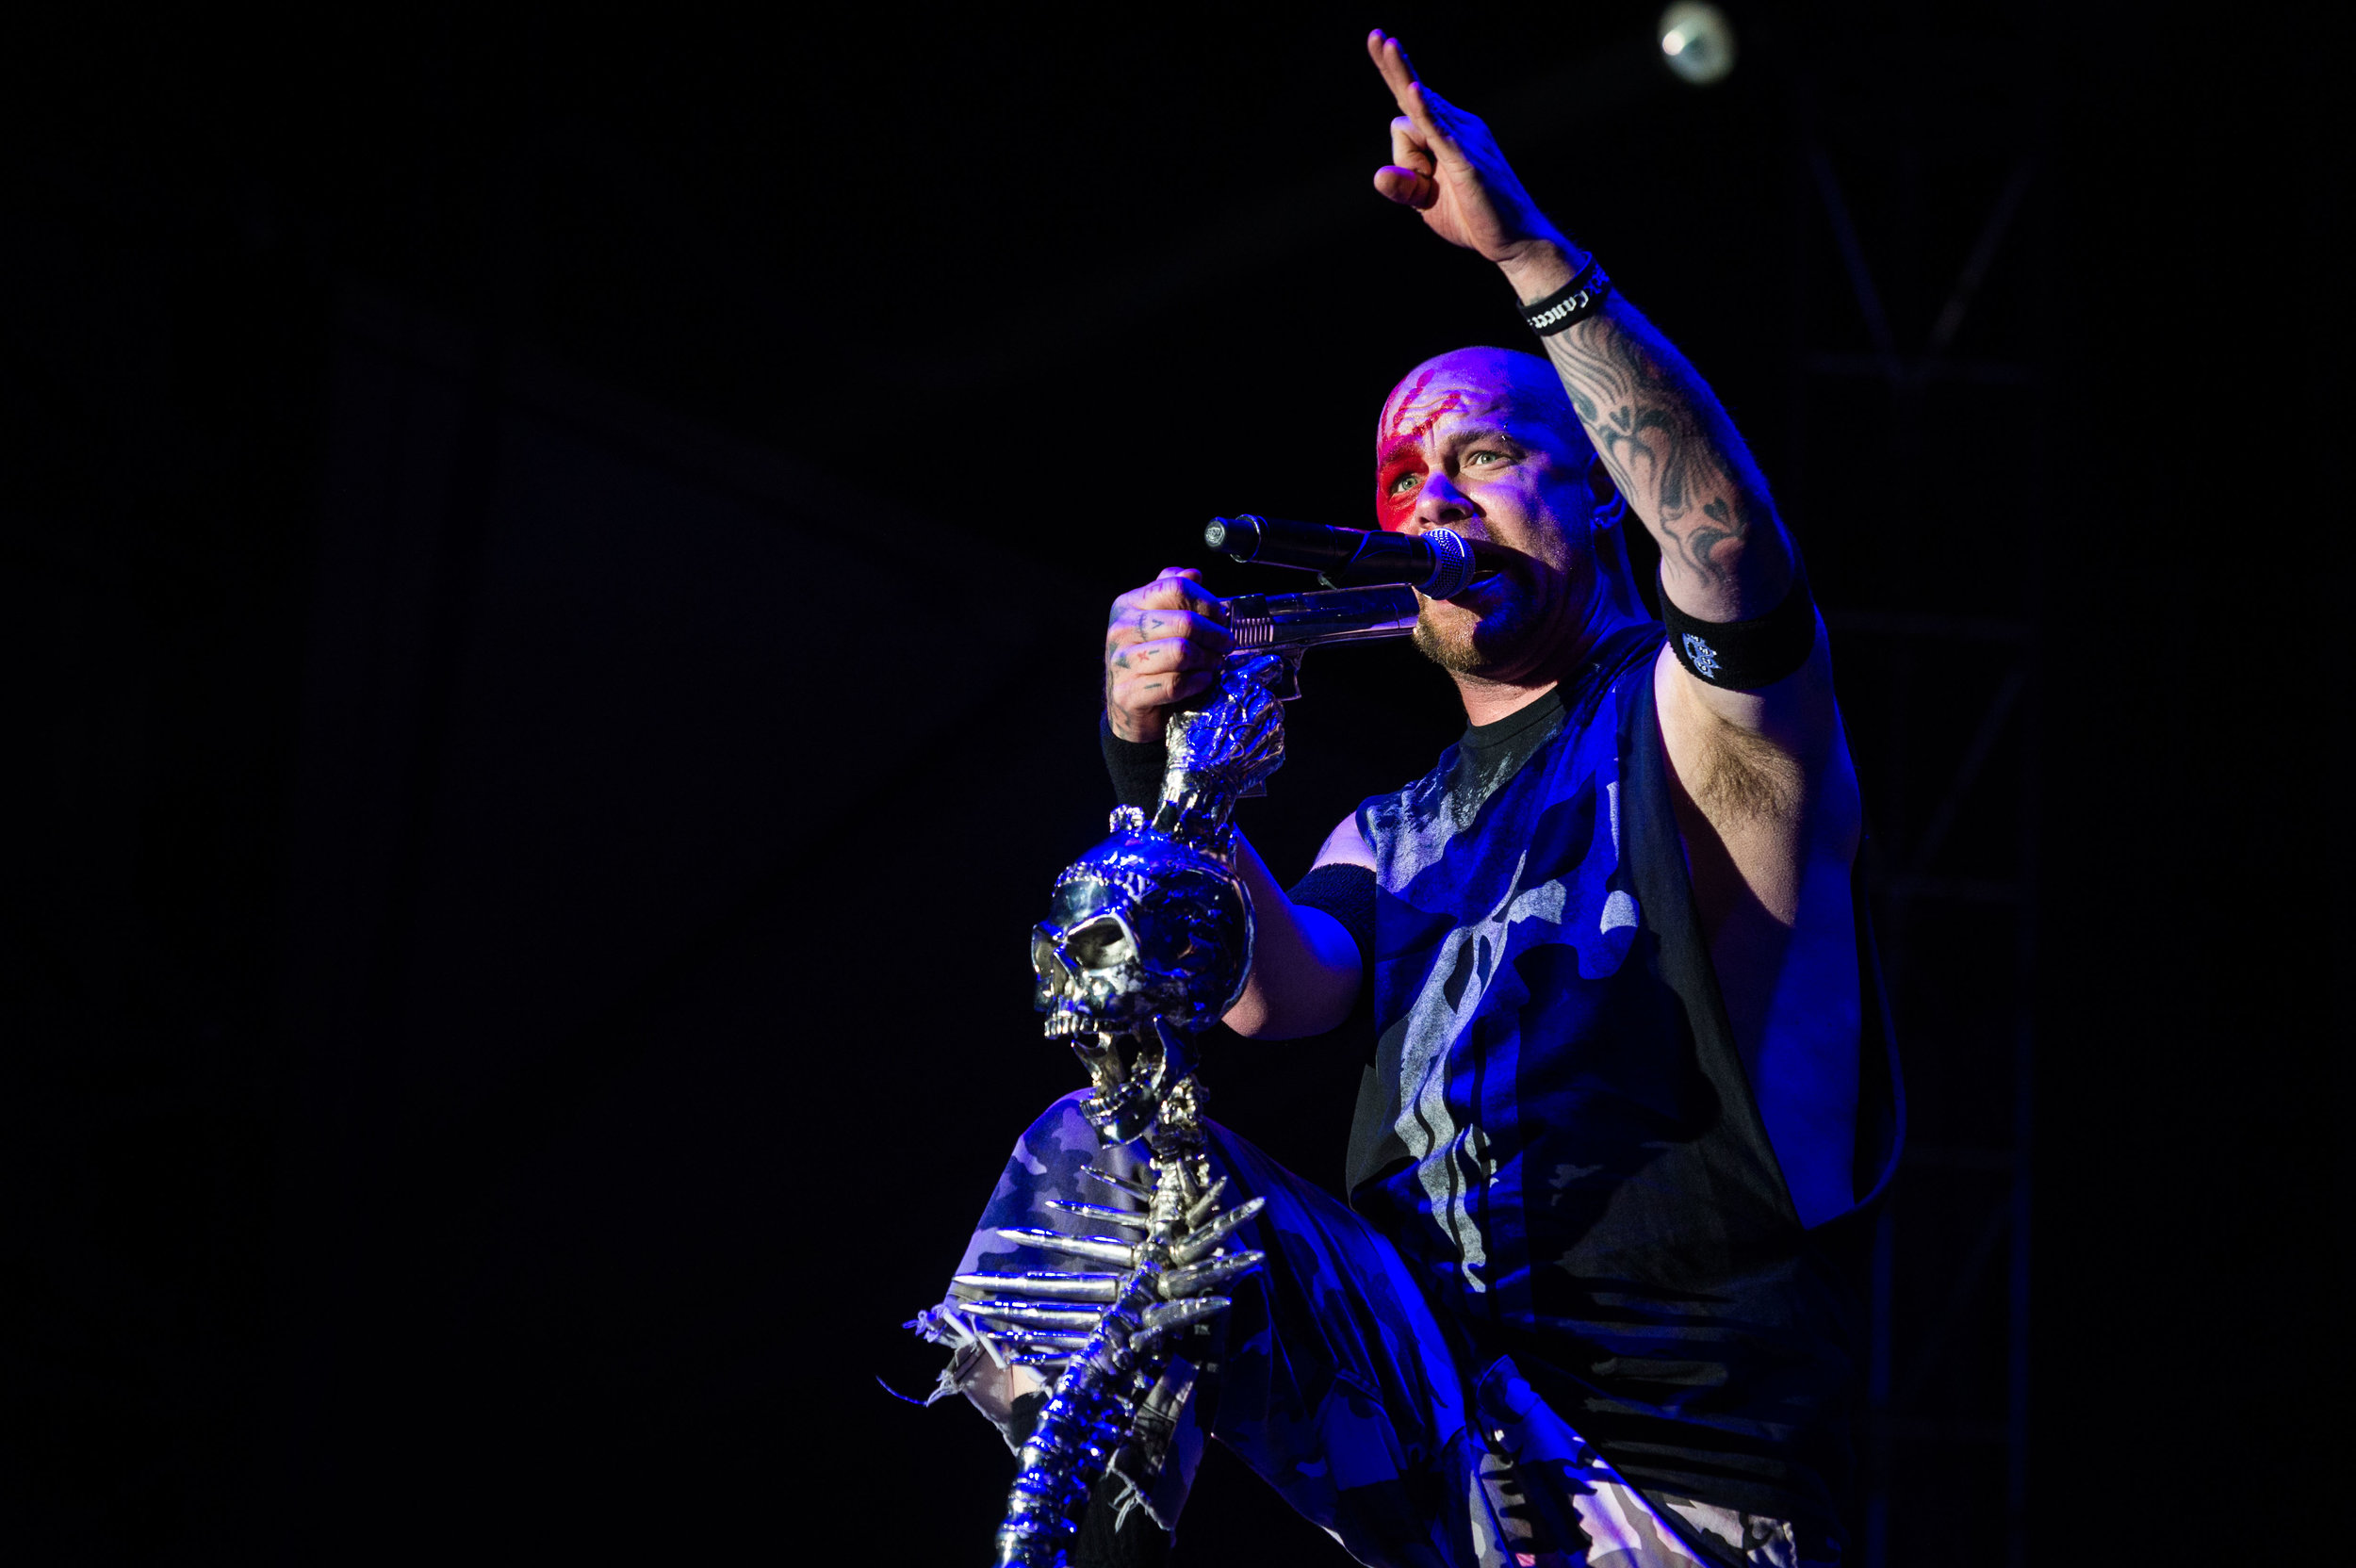 Five Finger Death Punch Sep 30 2017-24.jpg